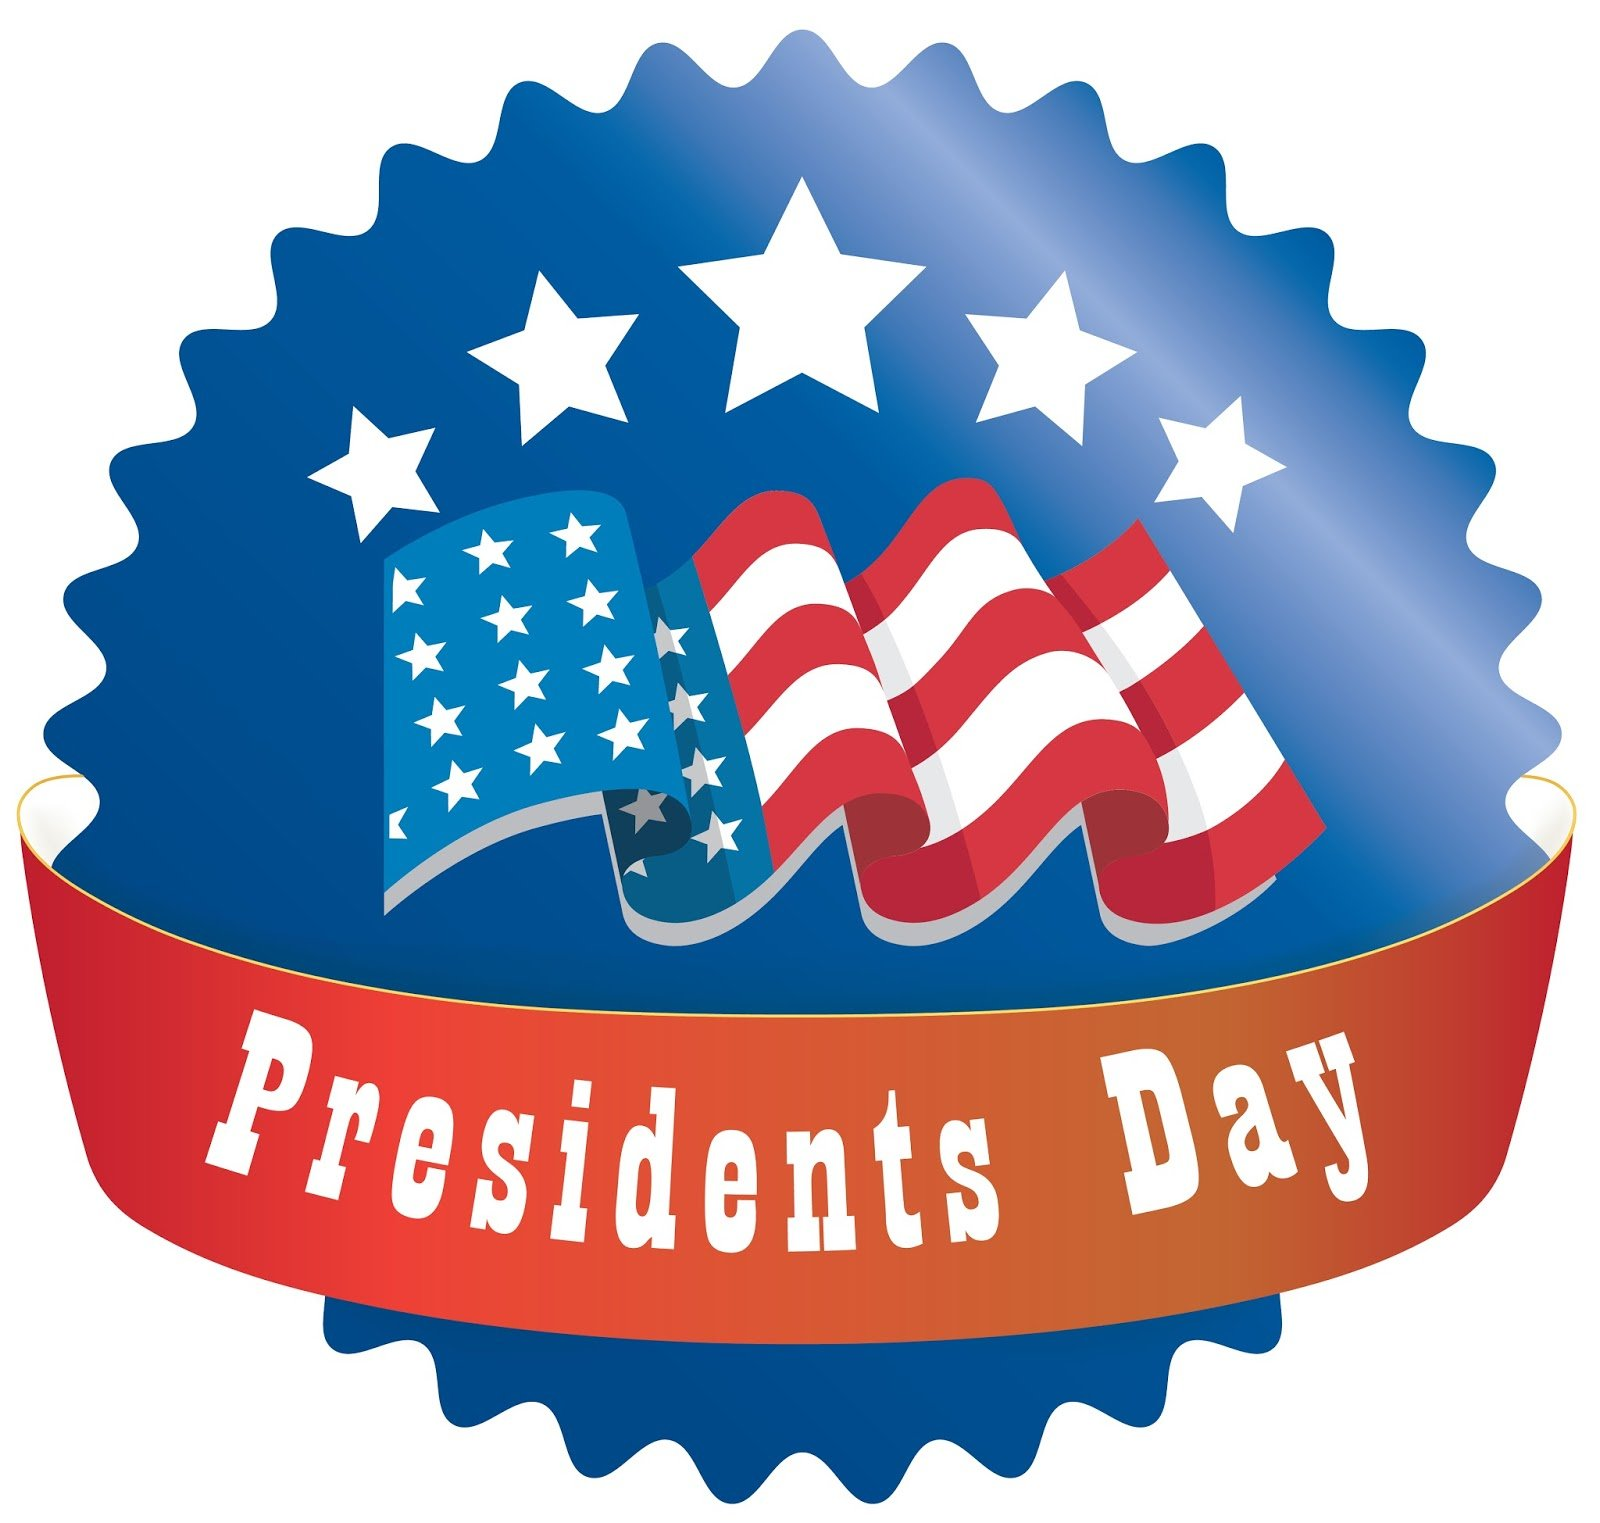 Presidents Day Clipart 2018 1600x1523